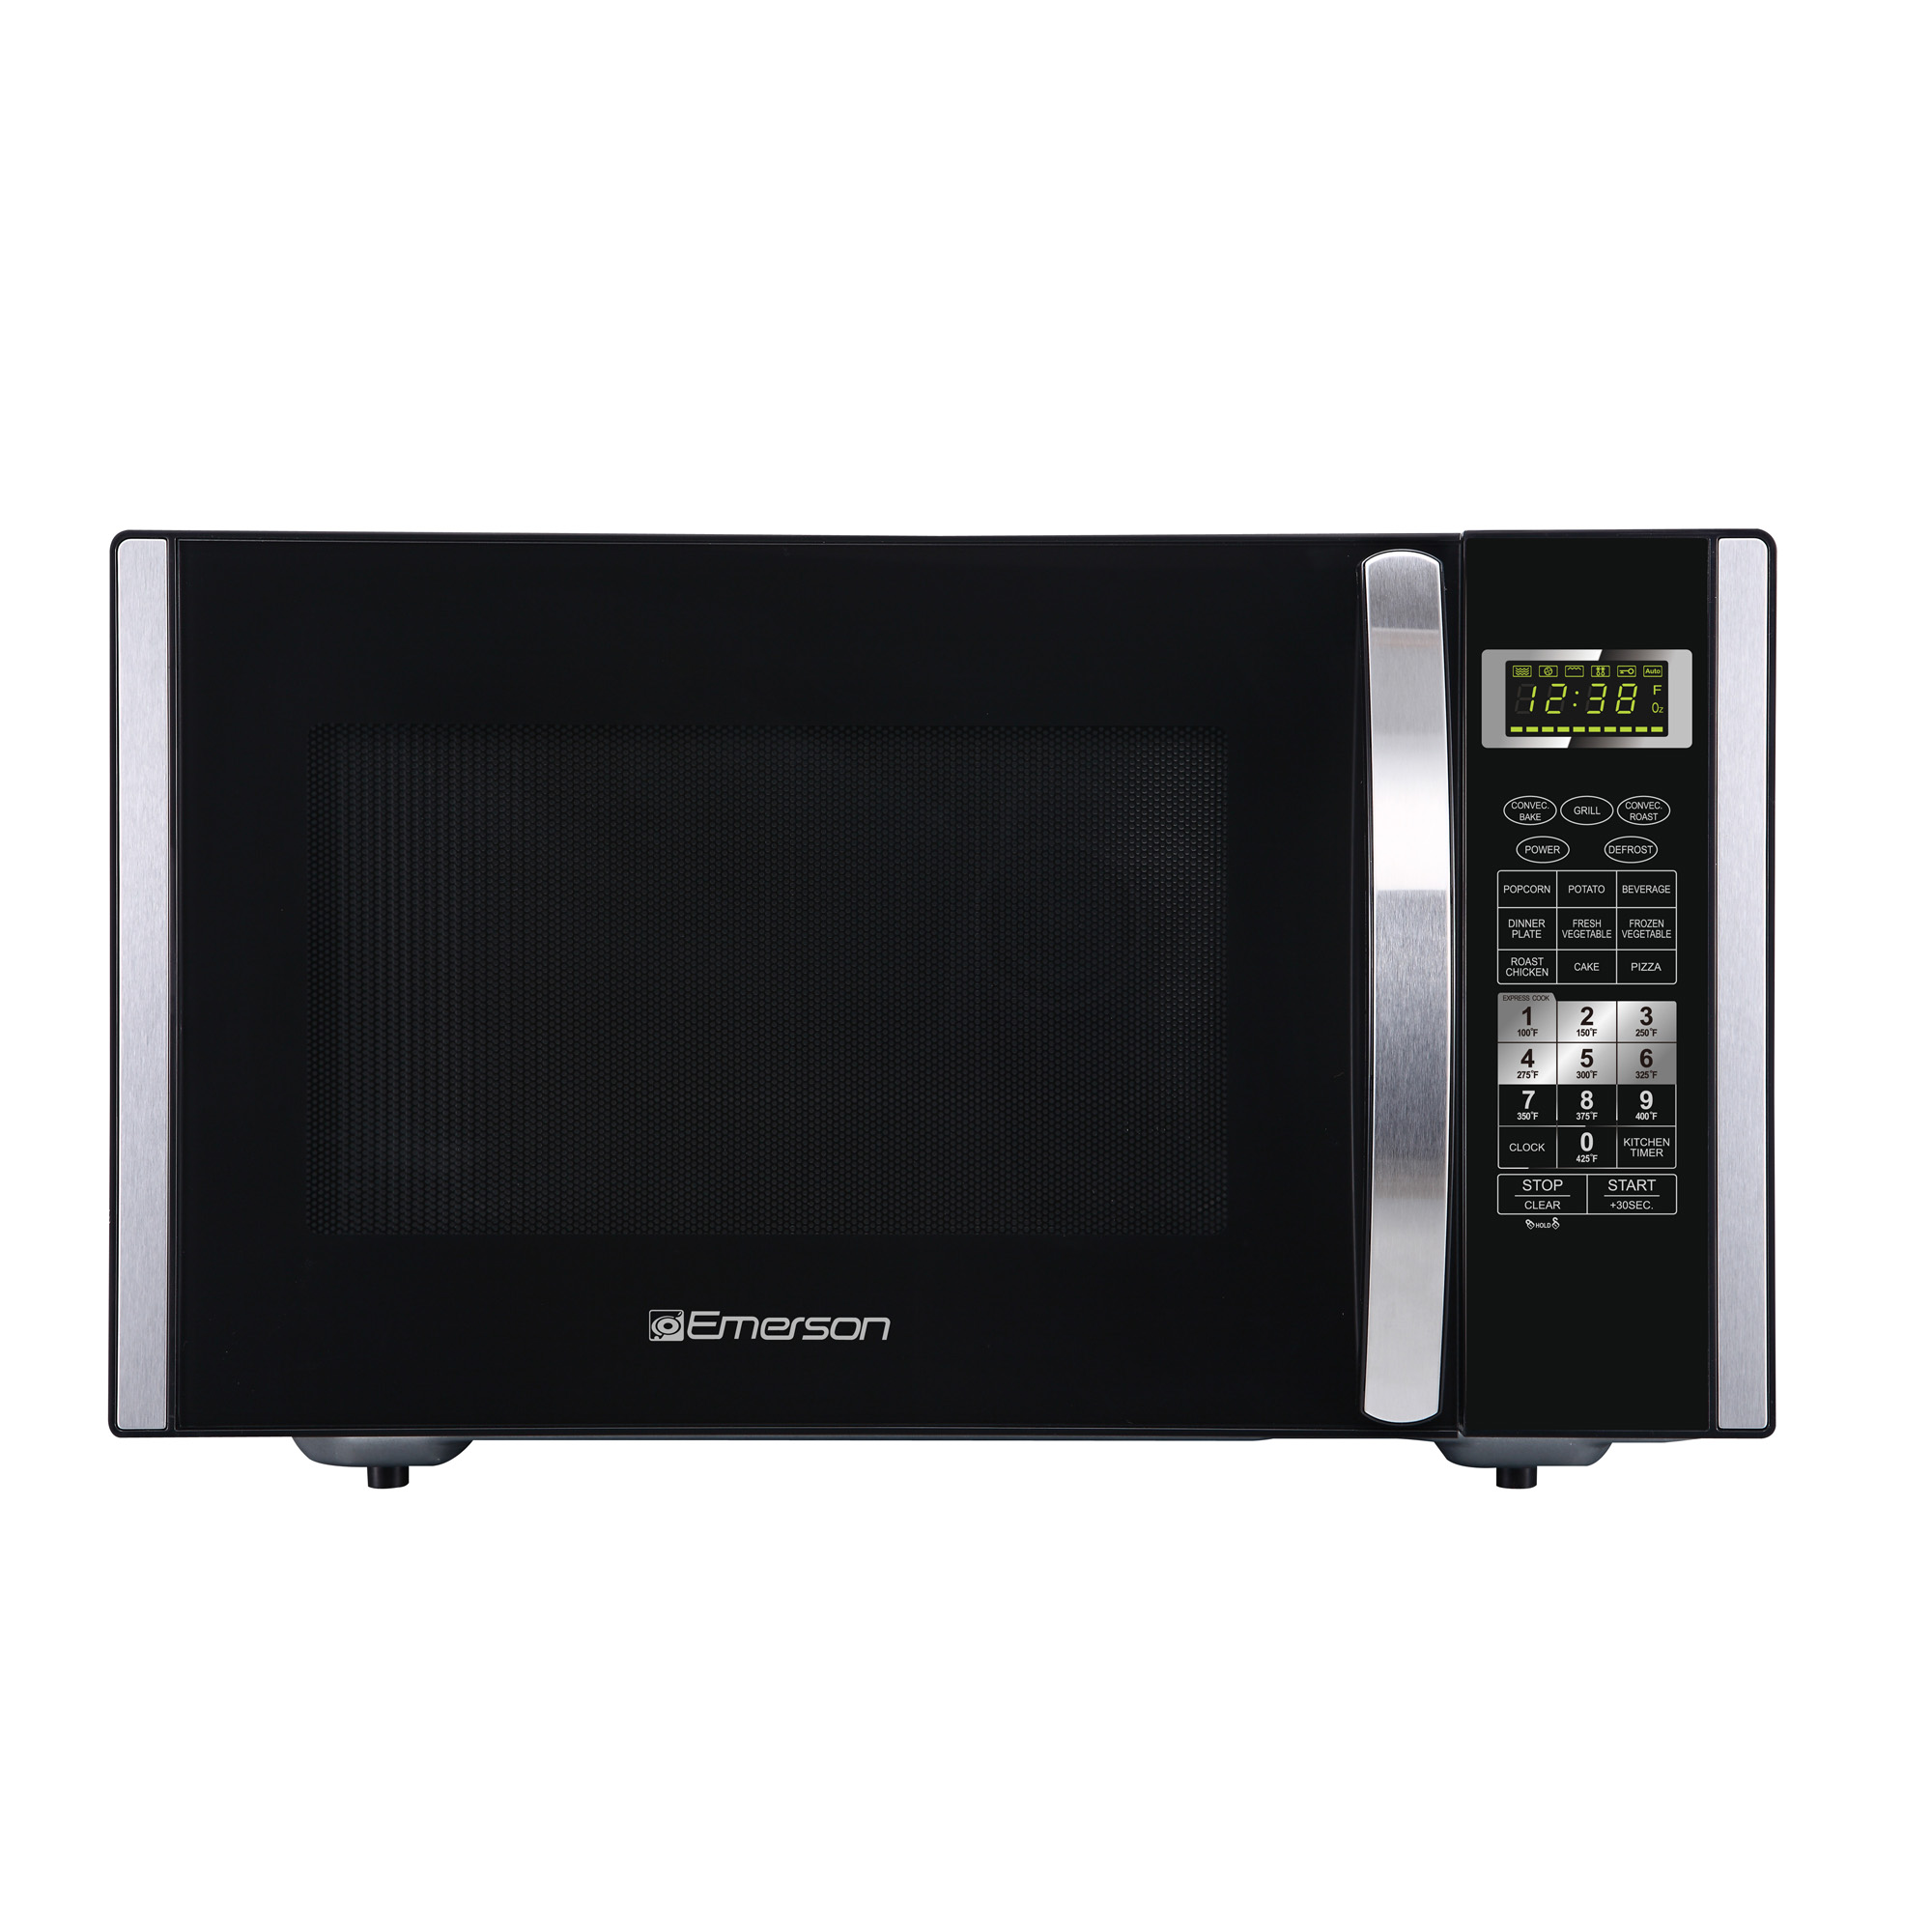 medium resolution of emerson 1 5 cu ft 1000w convection microwave oven with grill touch sharp carousel wiring diagram emerson microwave fan wiring diagram